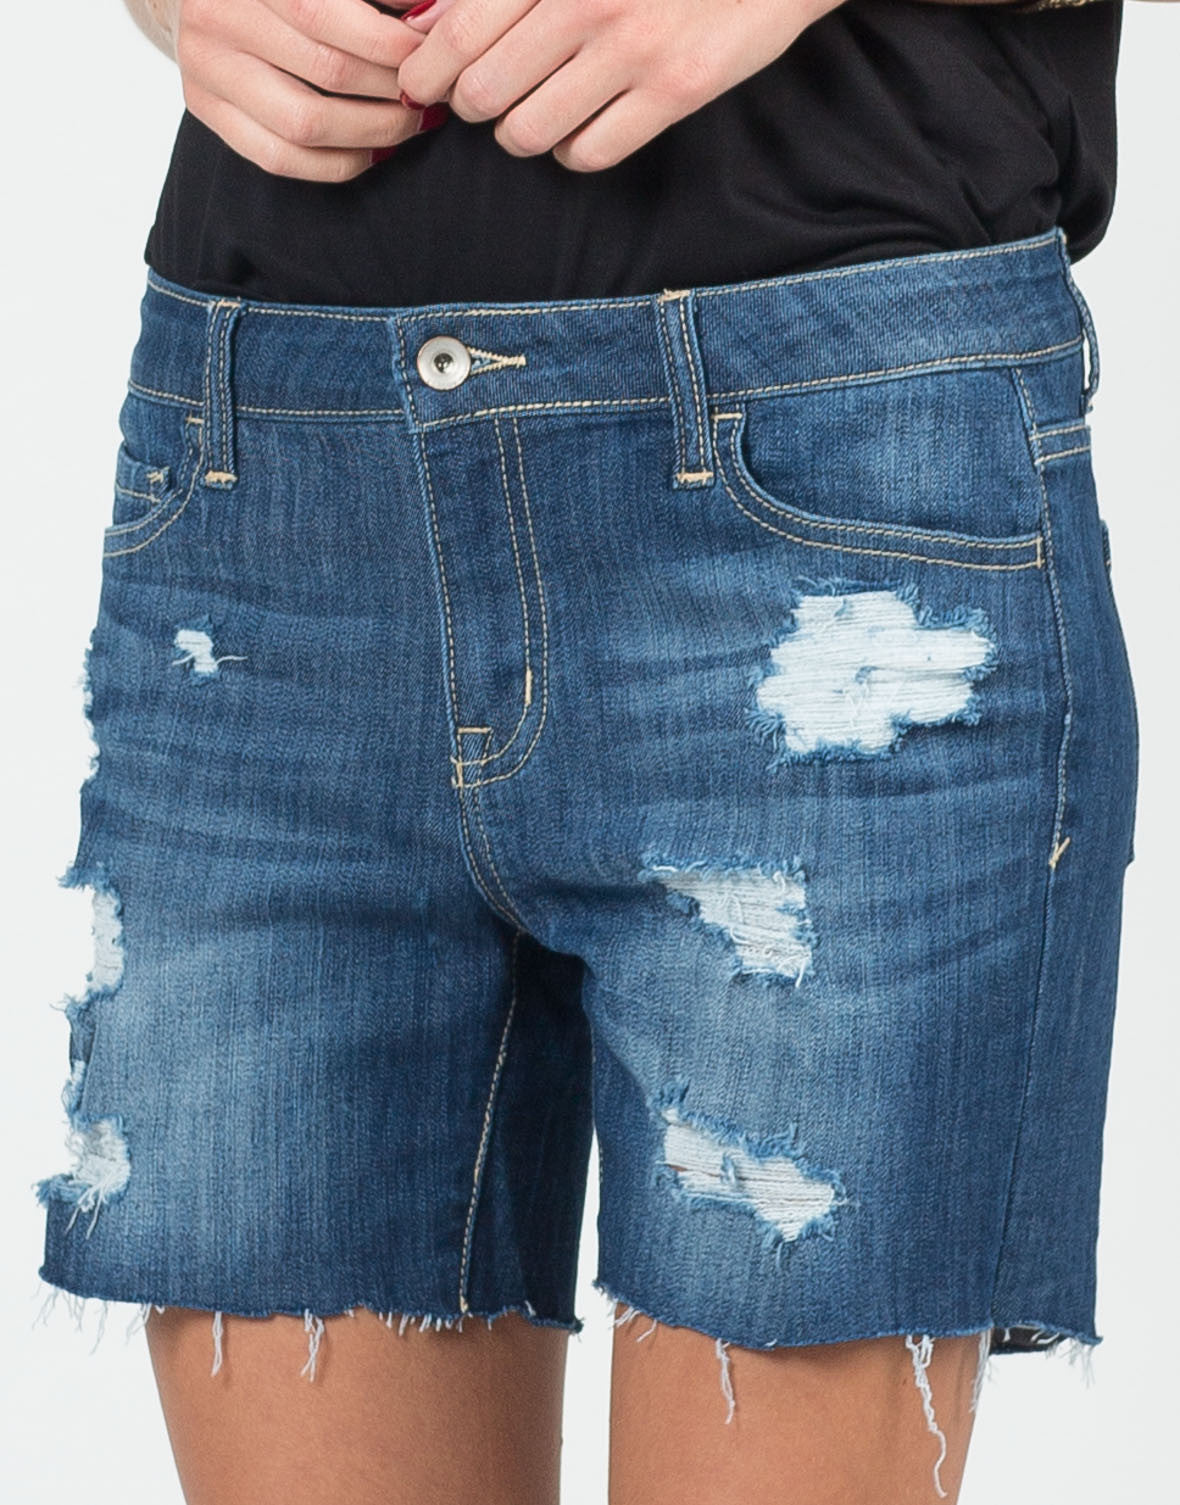 Detail of Stretchy Destroyed Bermuda Shorts